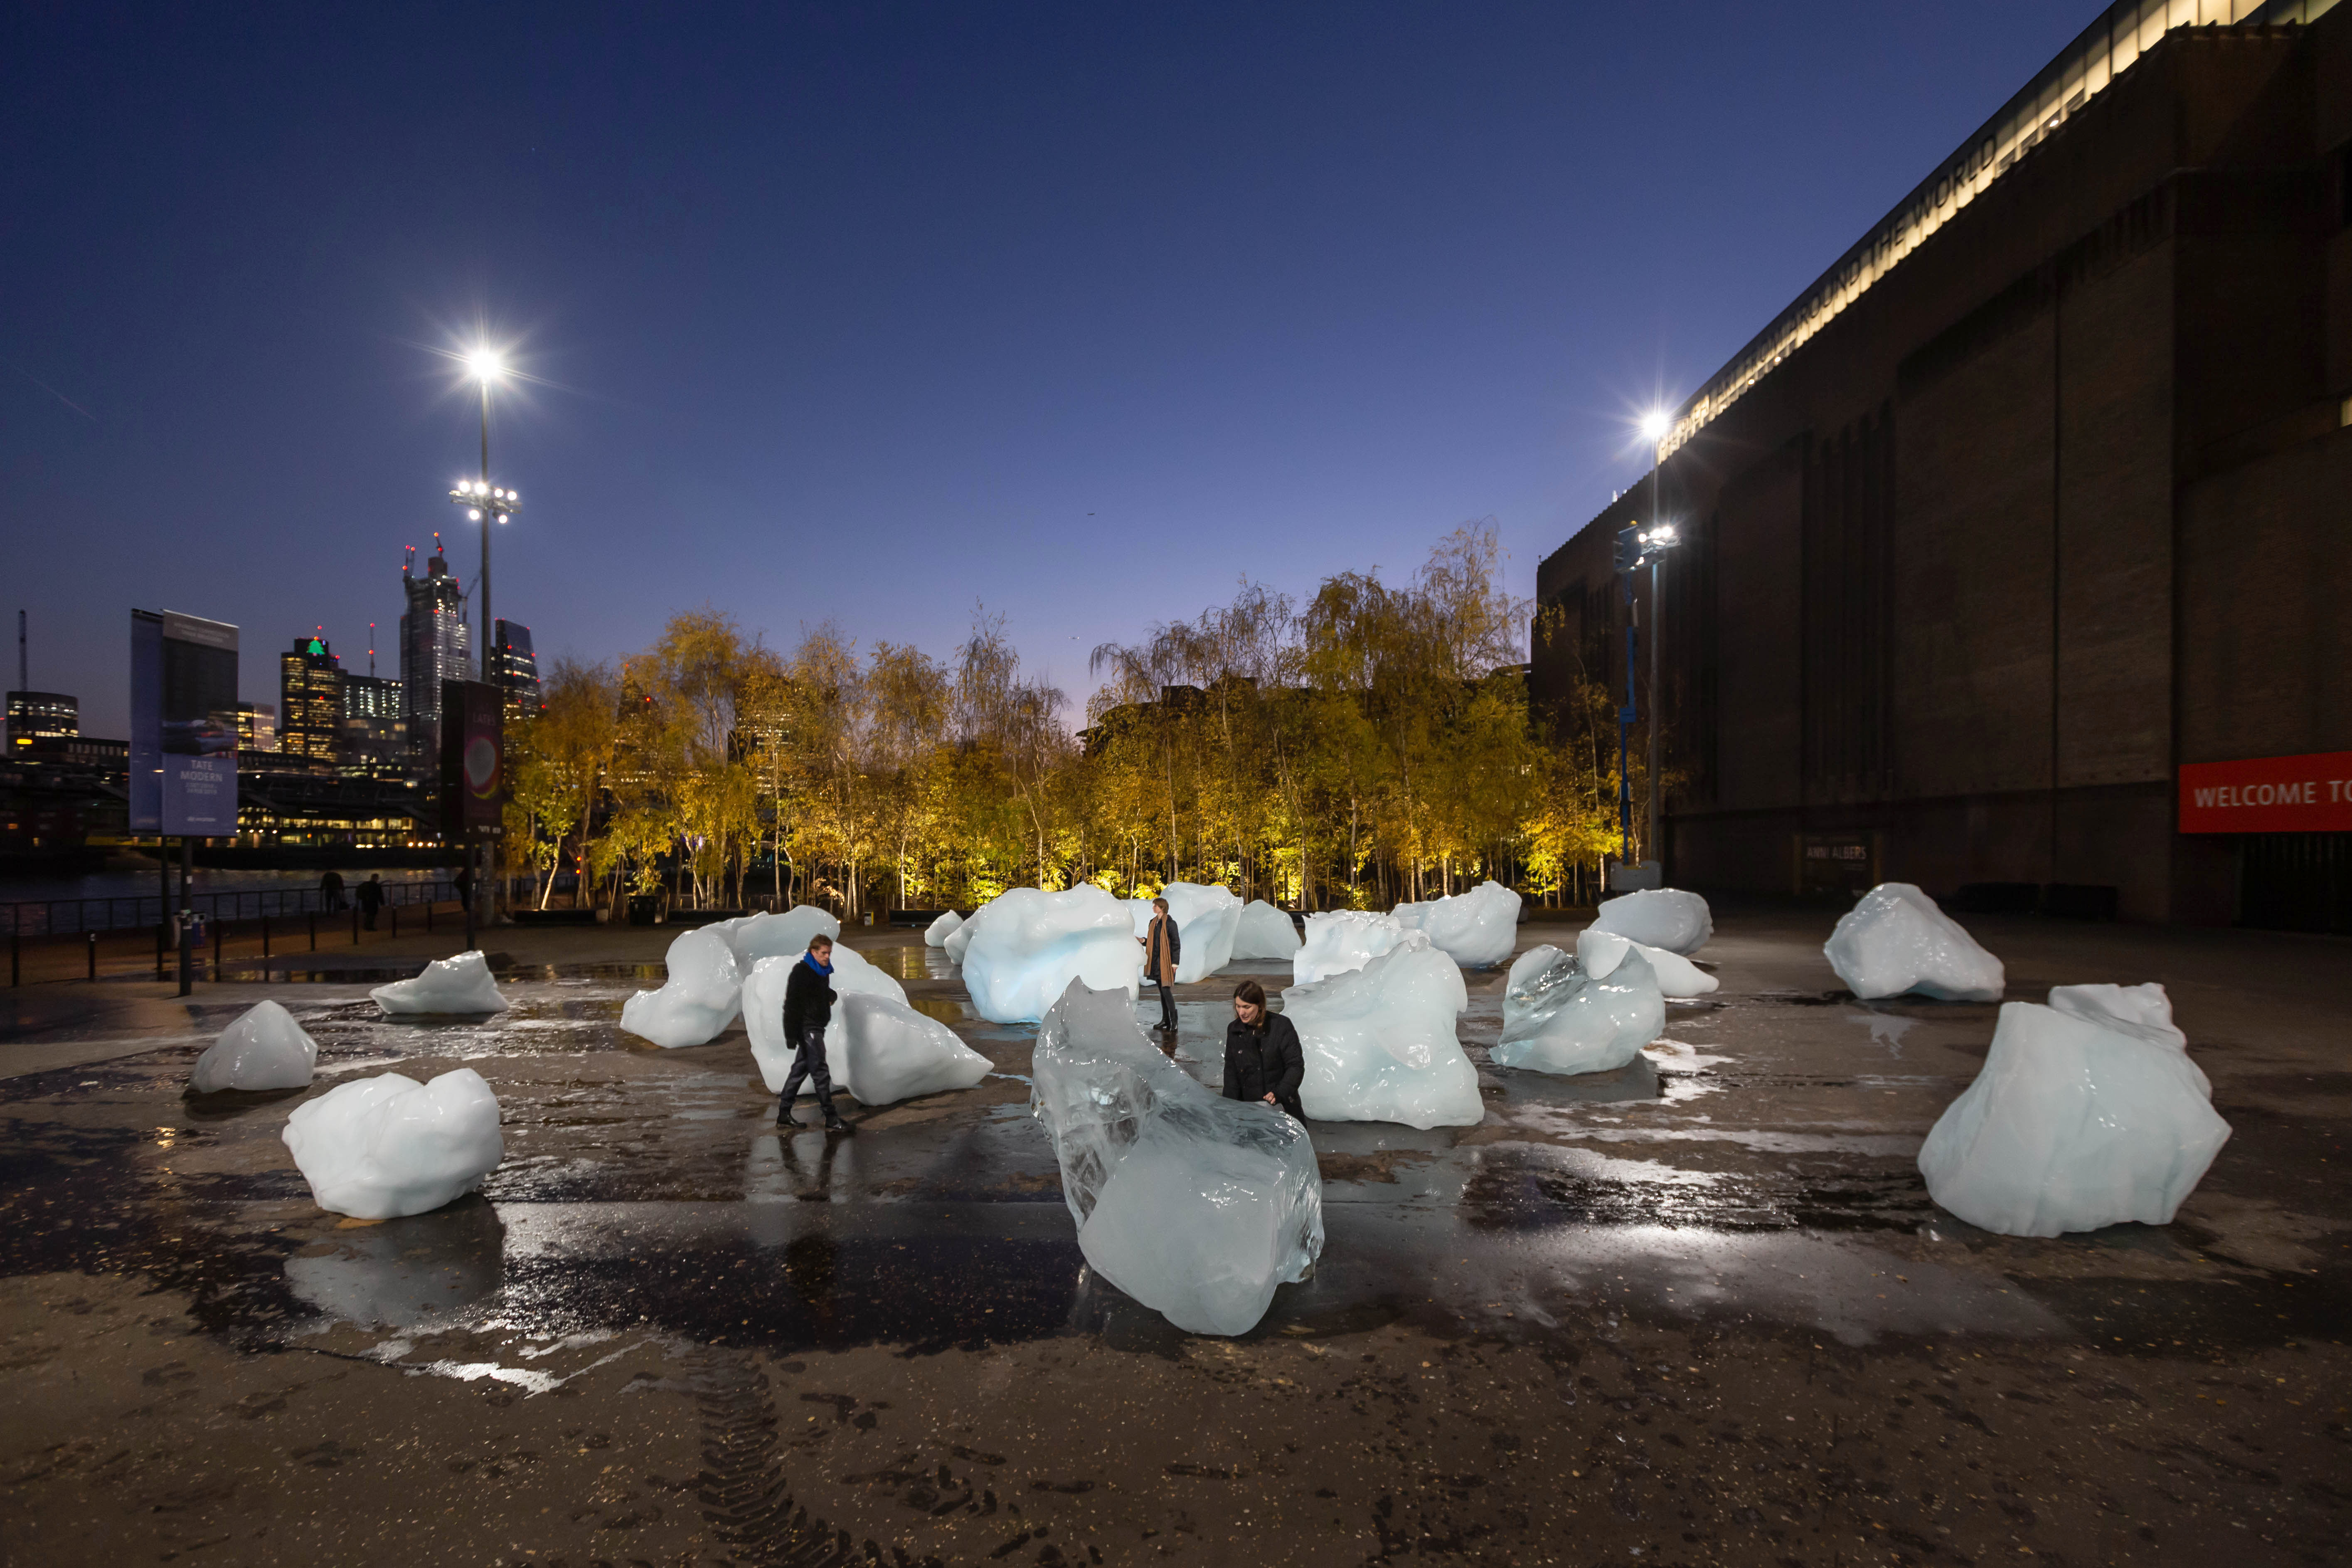 99682a6f99500 Ice Watch by Olafur Eliasson and Minik Rosing Supported by Bloomberg  Installation: Bankside, outside Tate Modern, 2018 Photo: Justin Sutcliffe ©  2018 Olafur ...